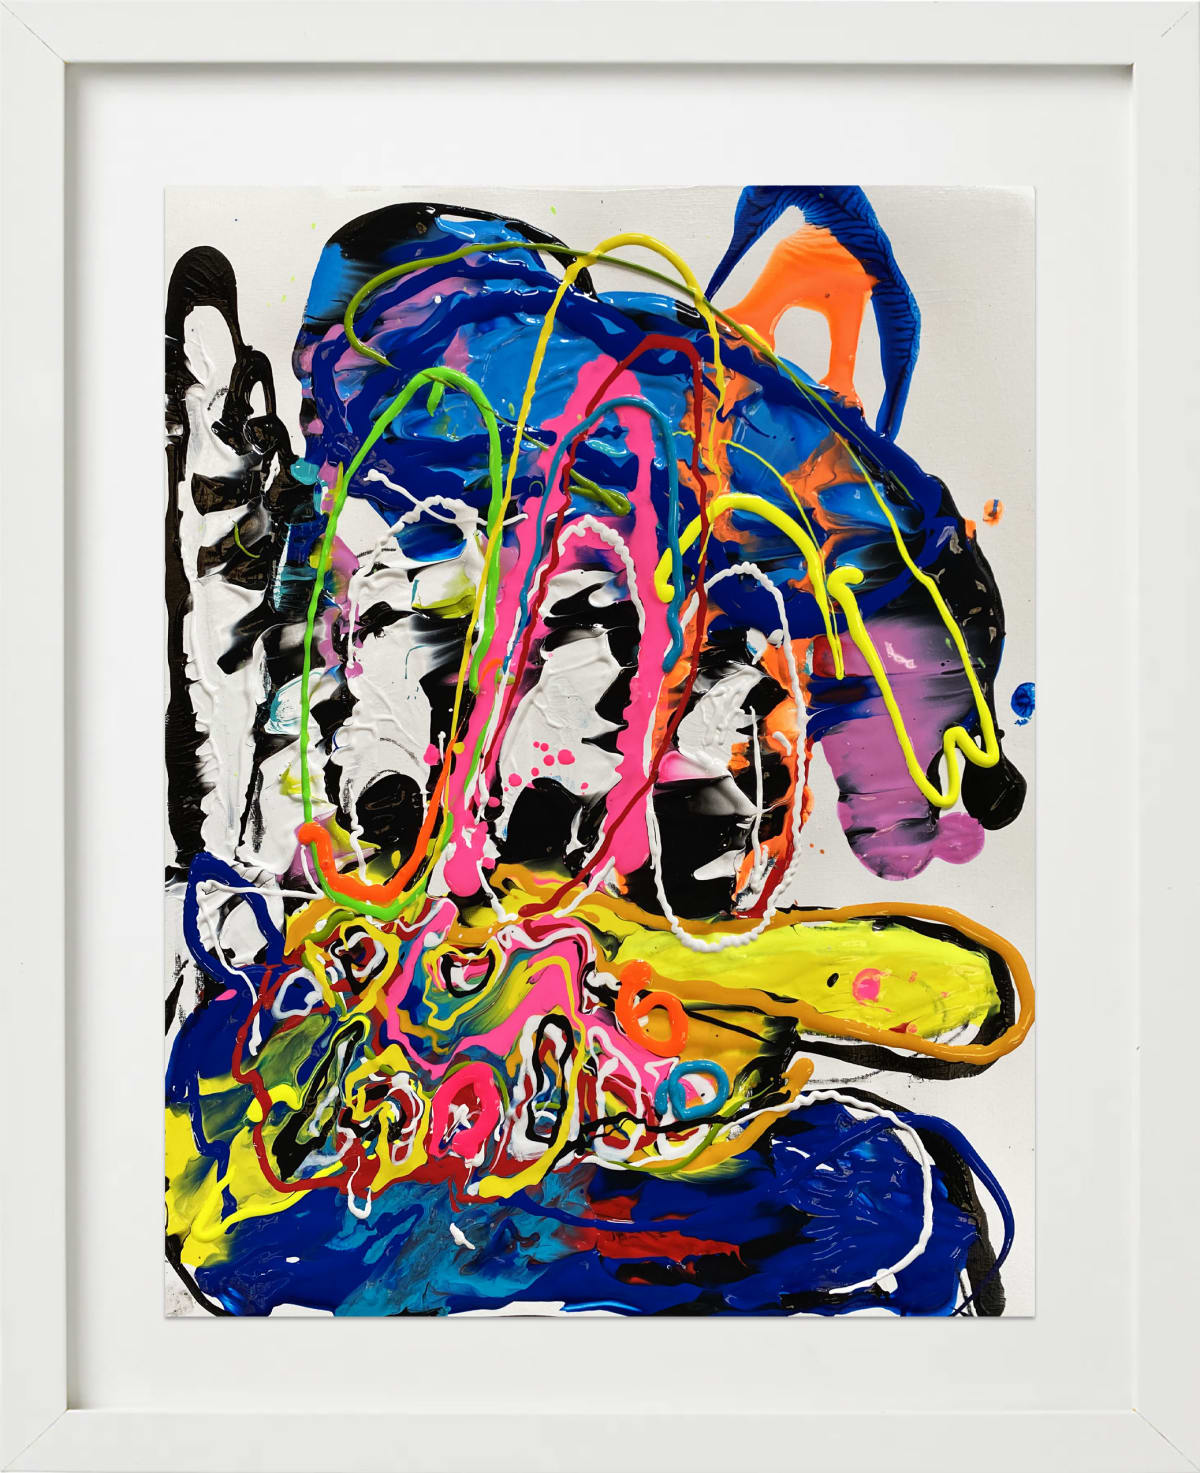 The Wise Little Duck No 1 by John Paul Fauves